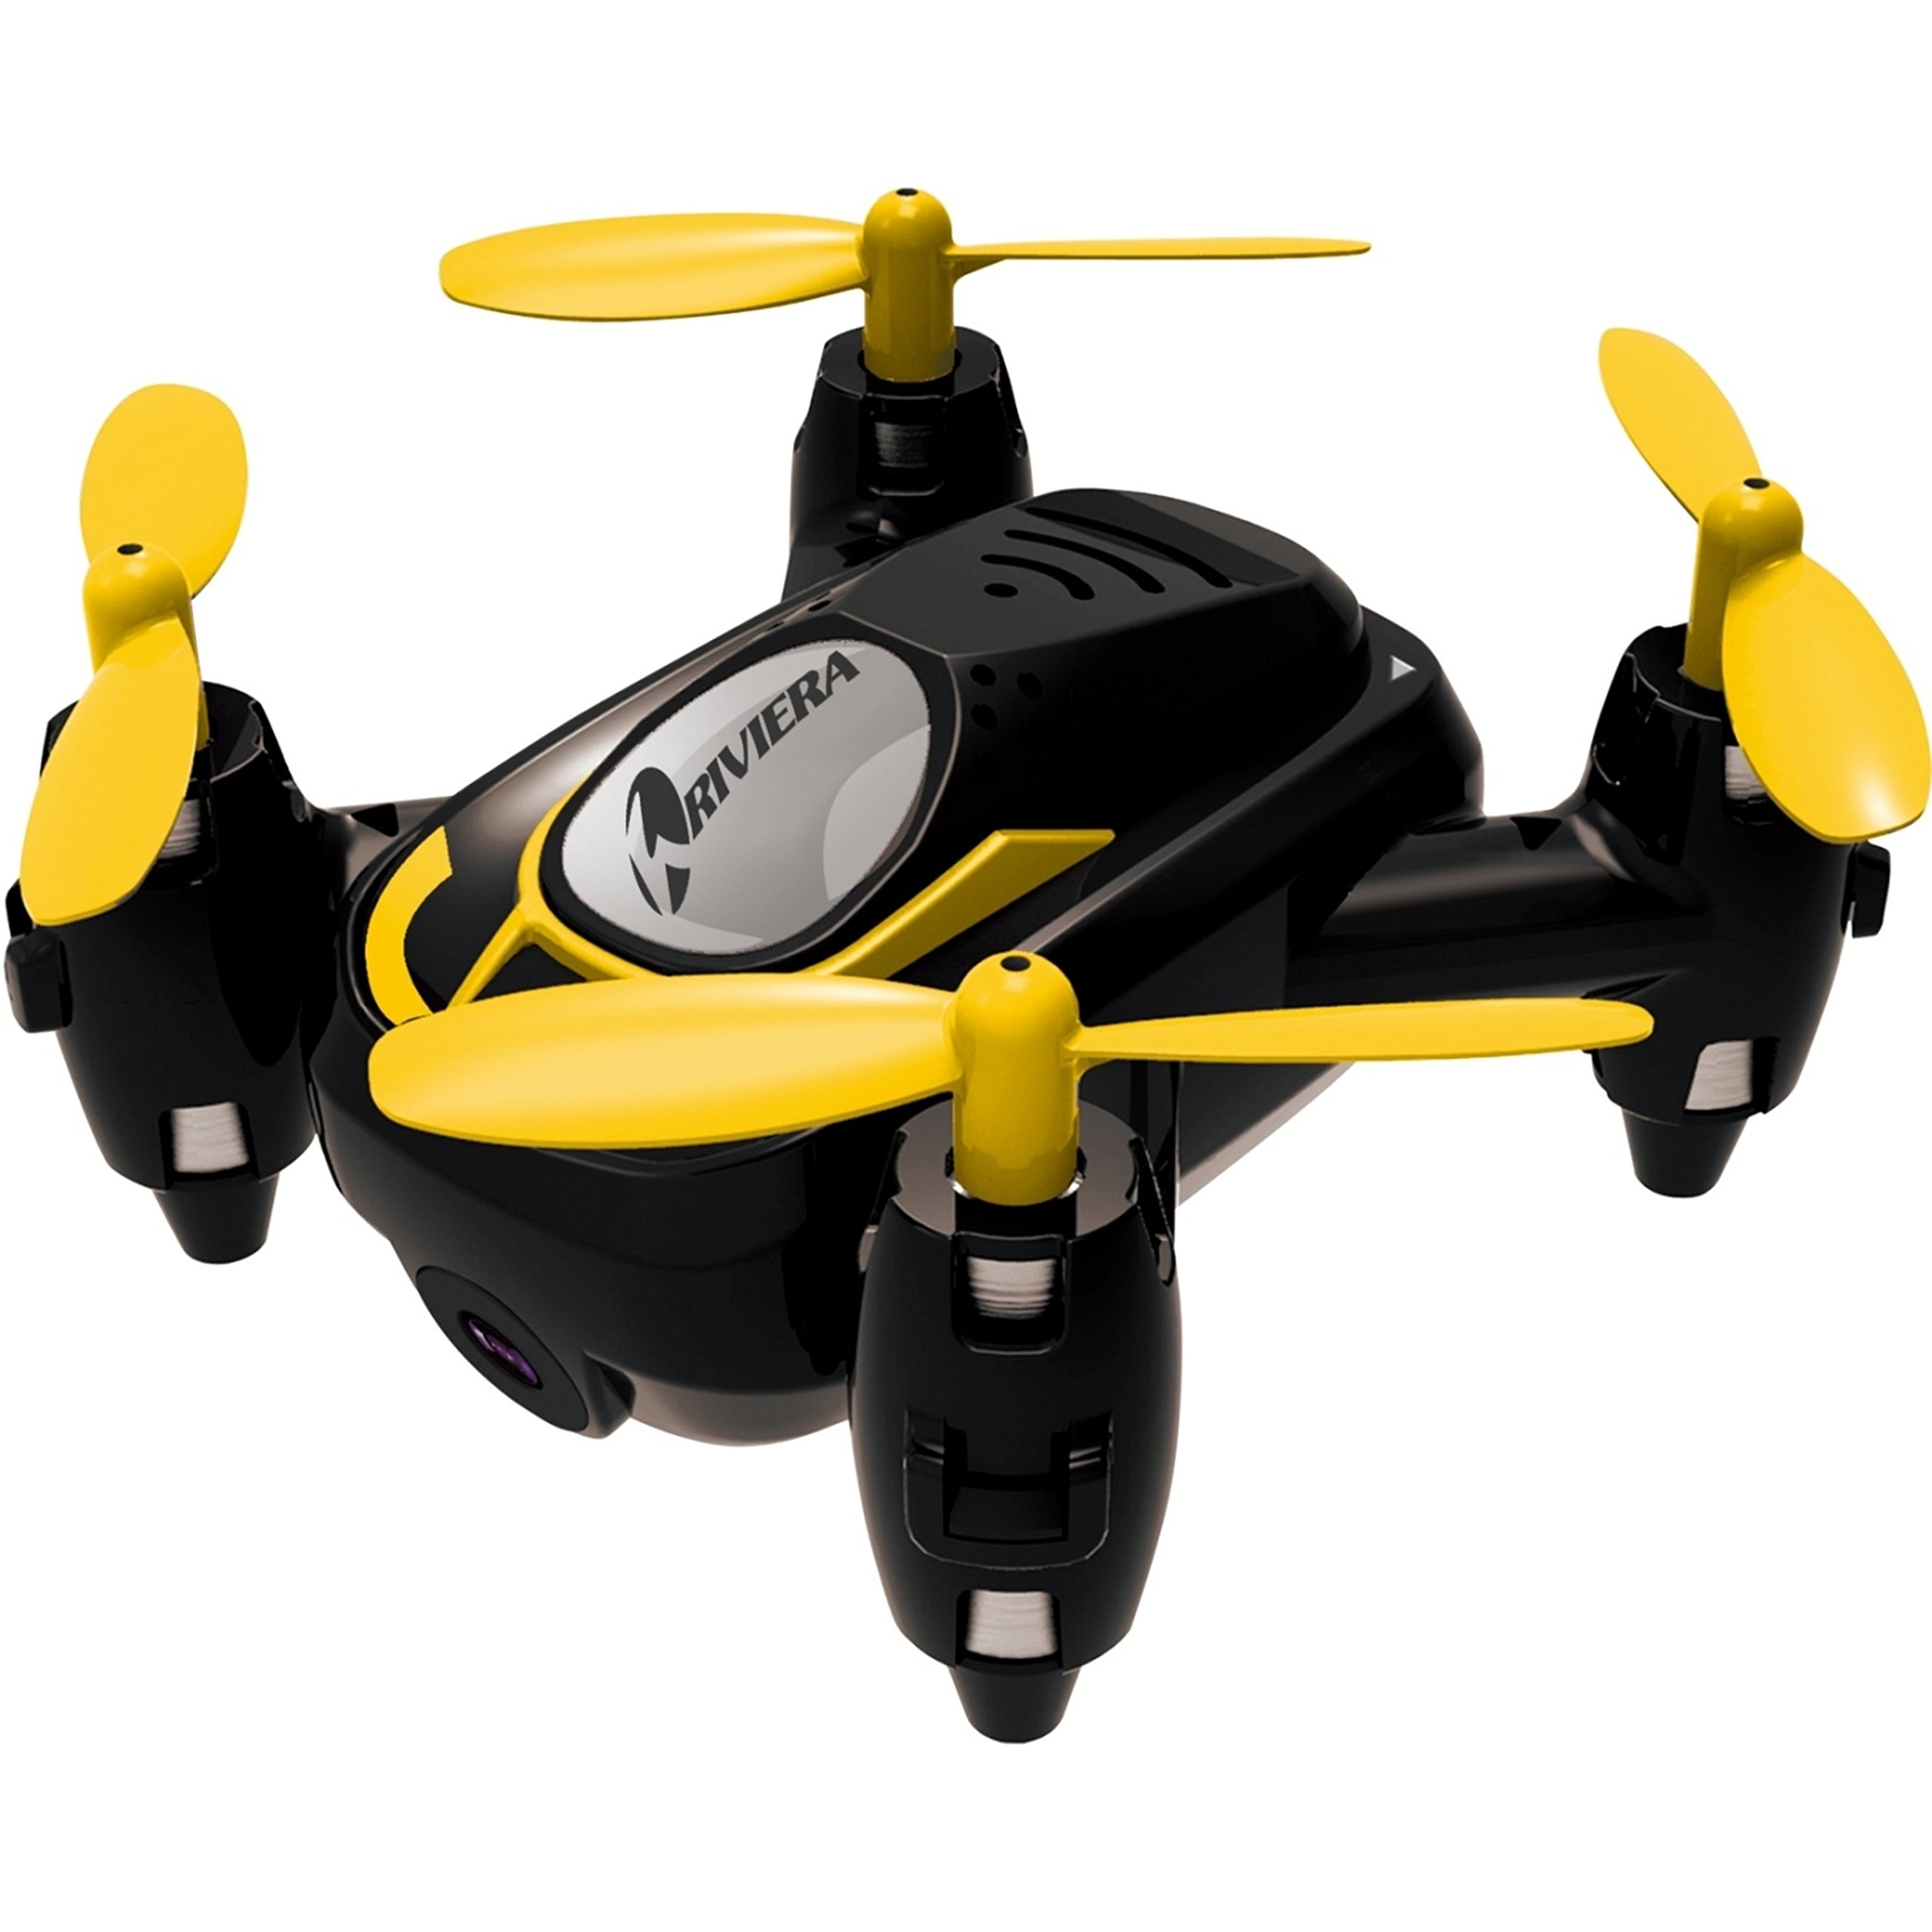 2.4Ghz Transmitter 4Channels Remote Control Micro Quadcopter Wi-Fi Black Drone